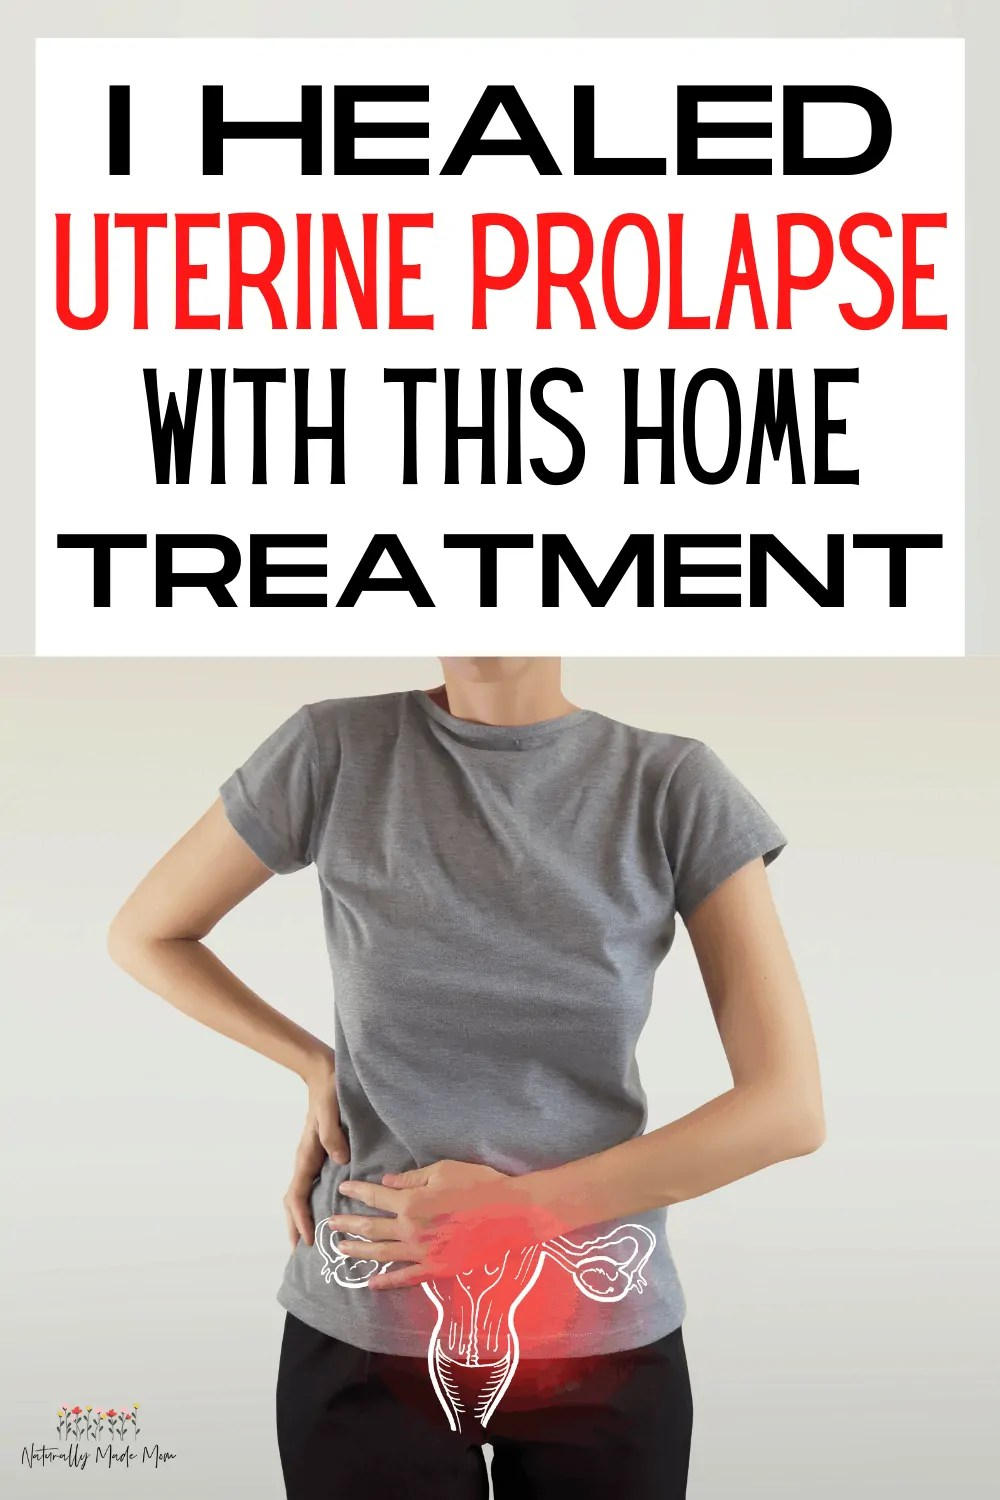 At Home Treatment for Uterine Prolapse